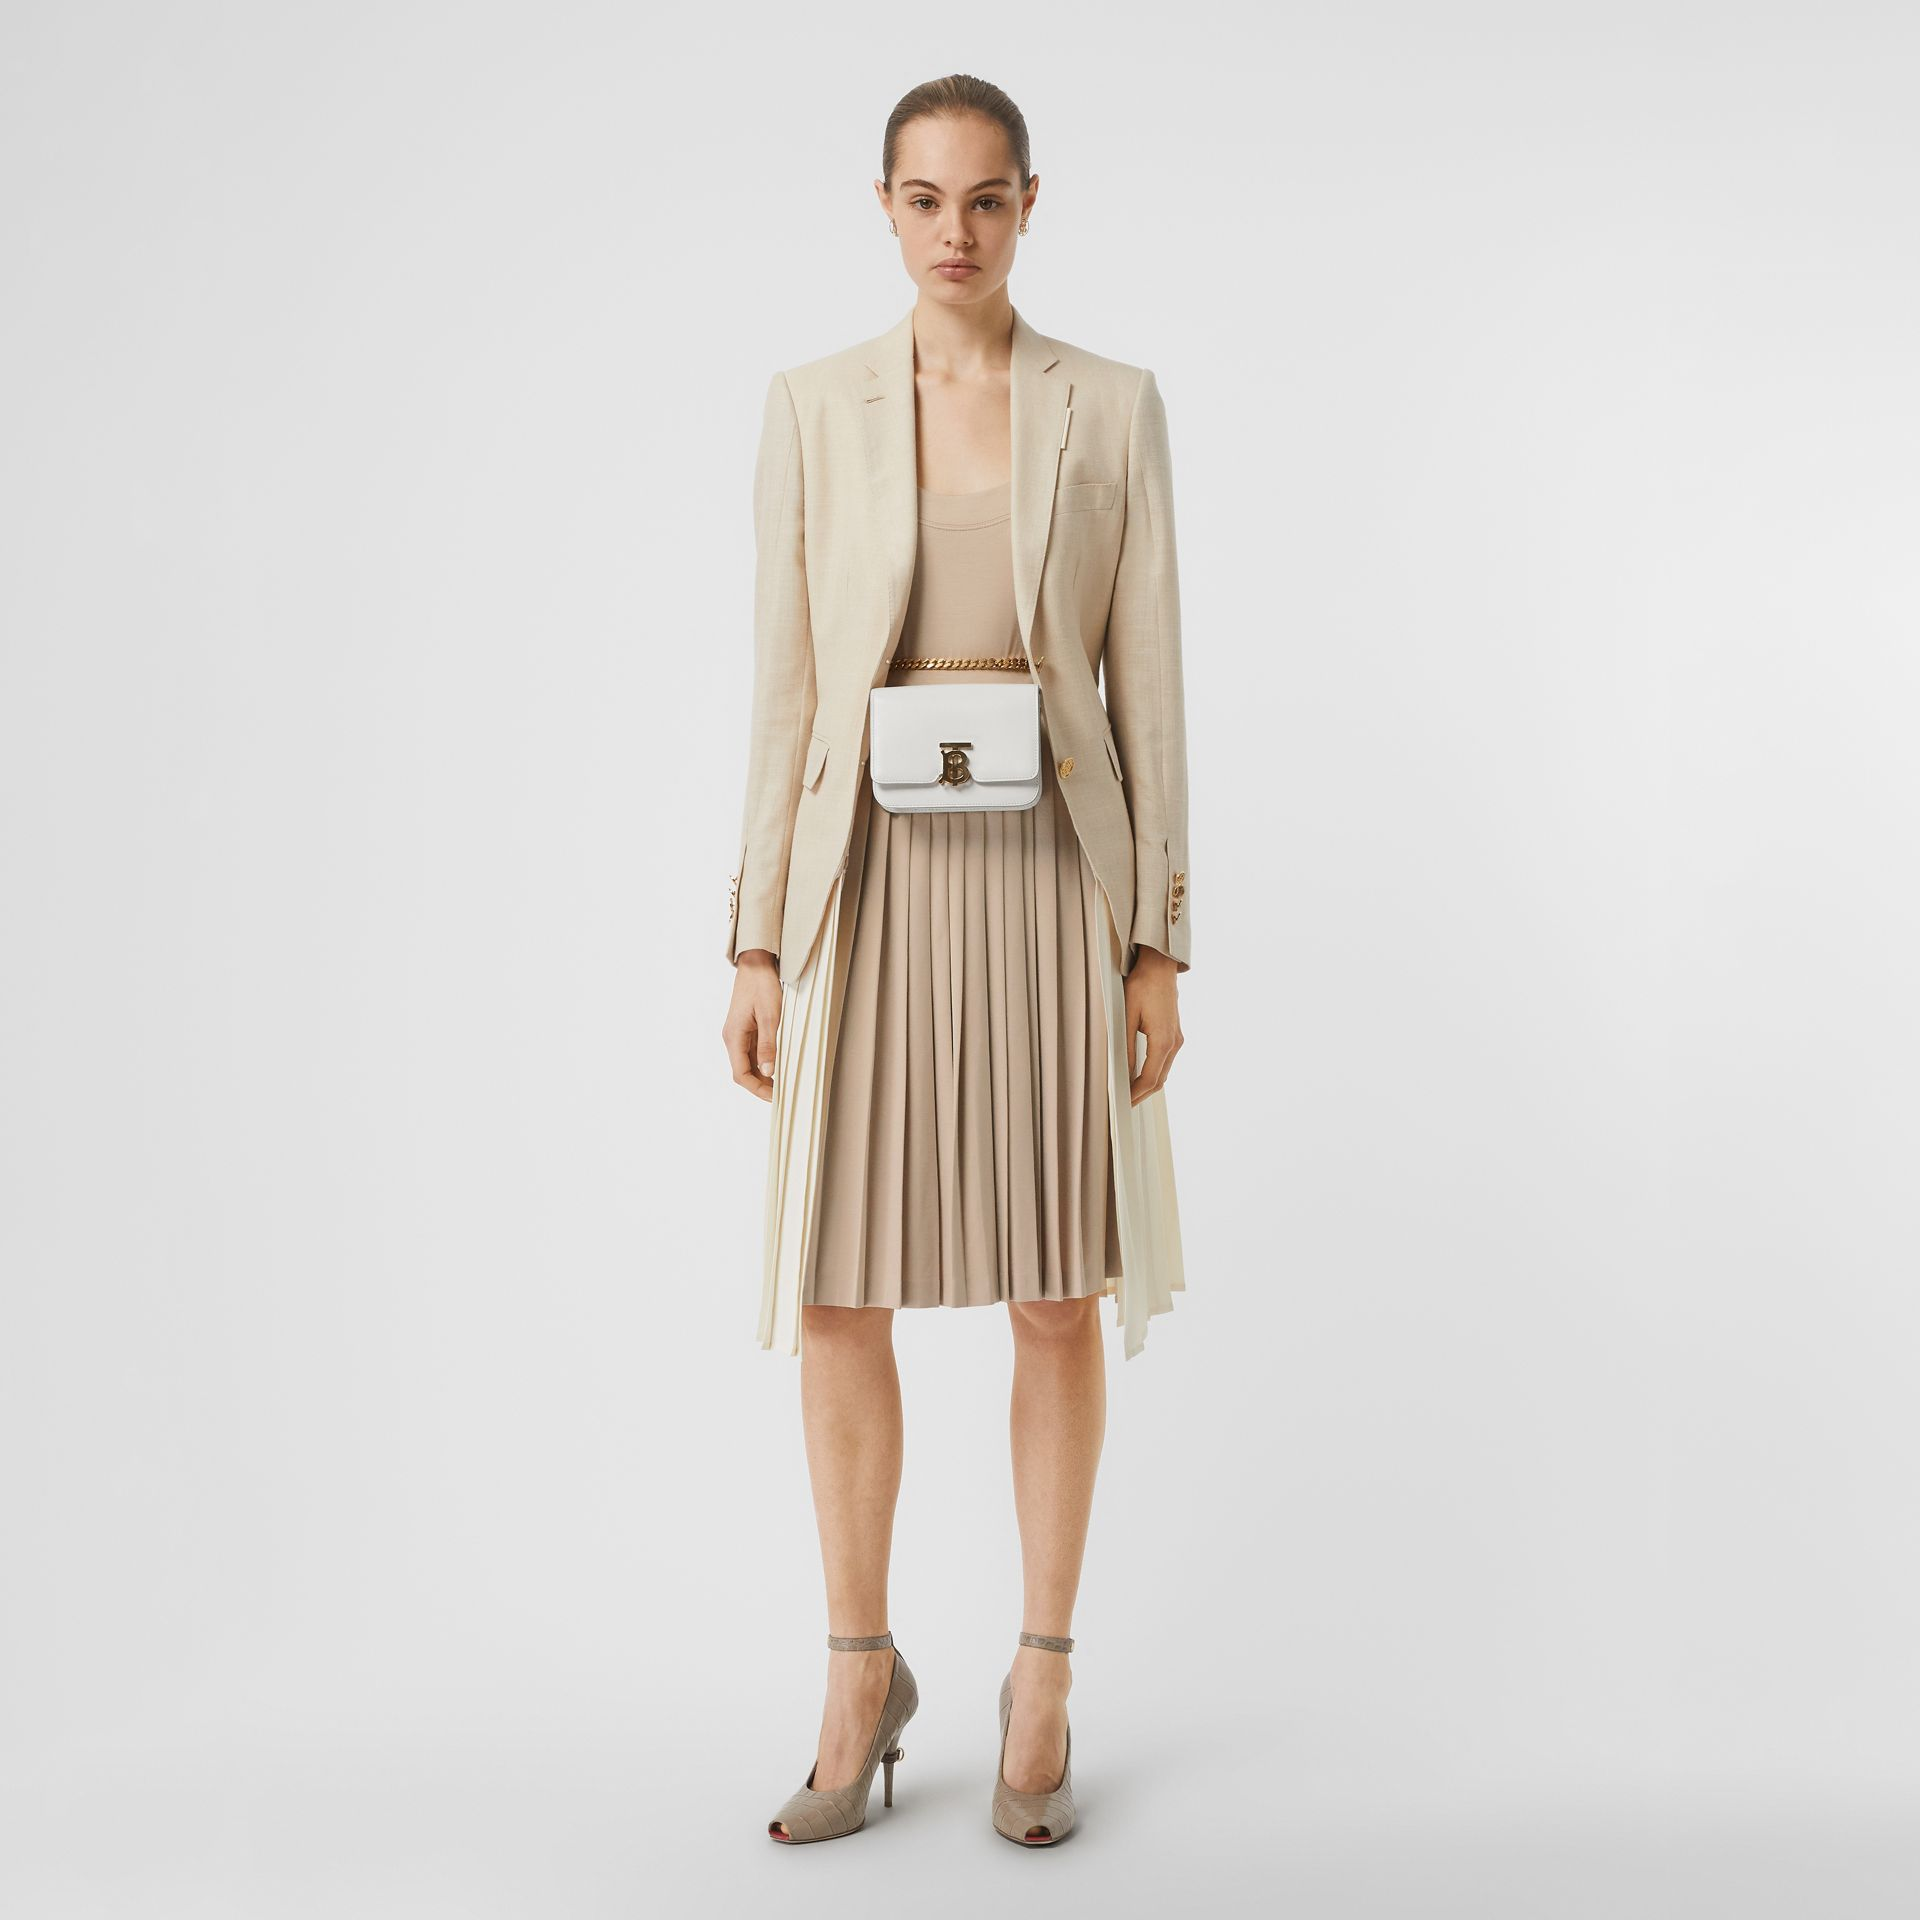 Long-sleeve Pleated Dress in Teddy Beige - Women | Burberry Hong Kong S.A.R - gallery image 5